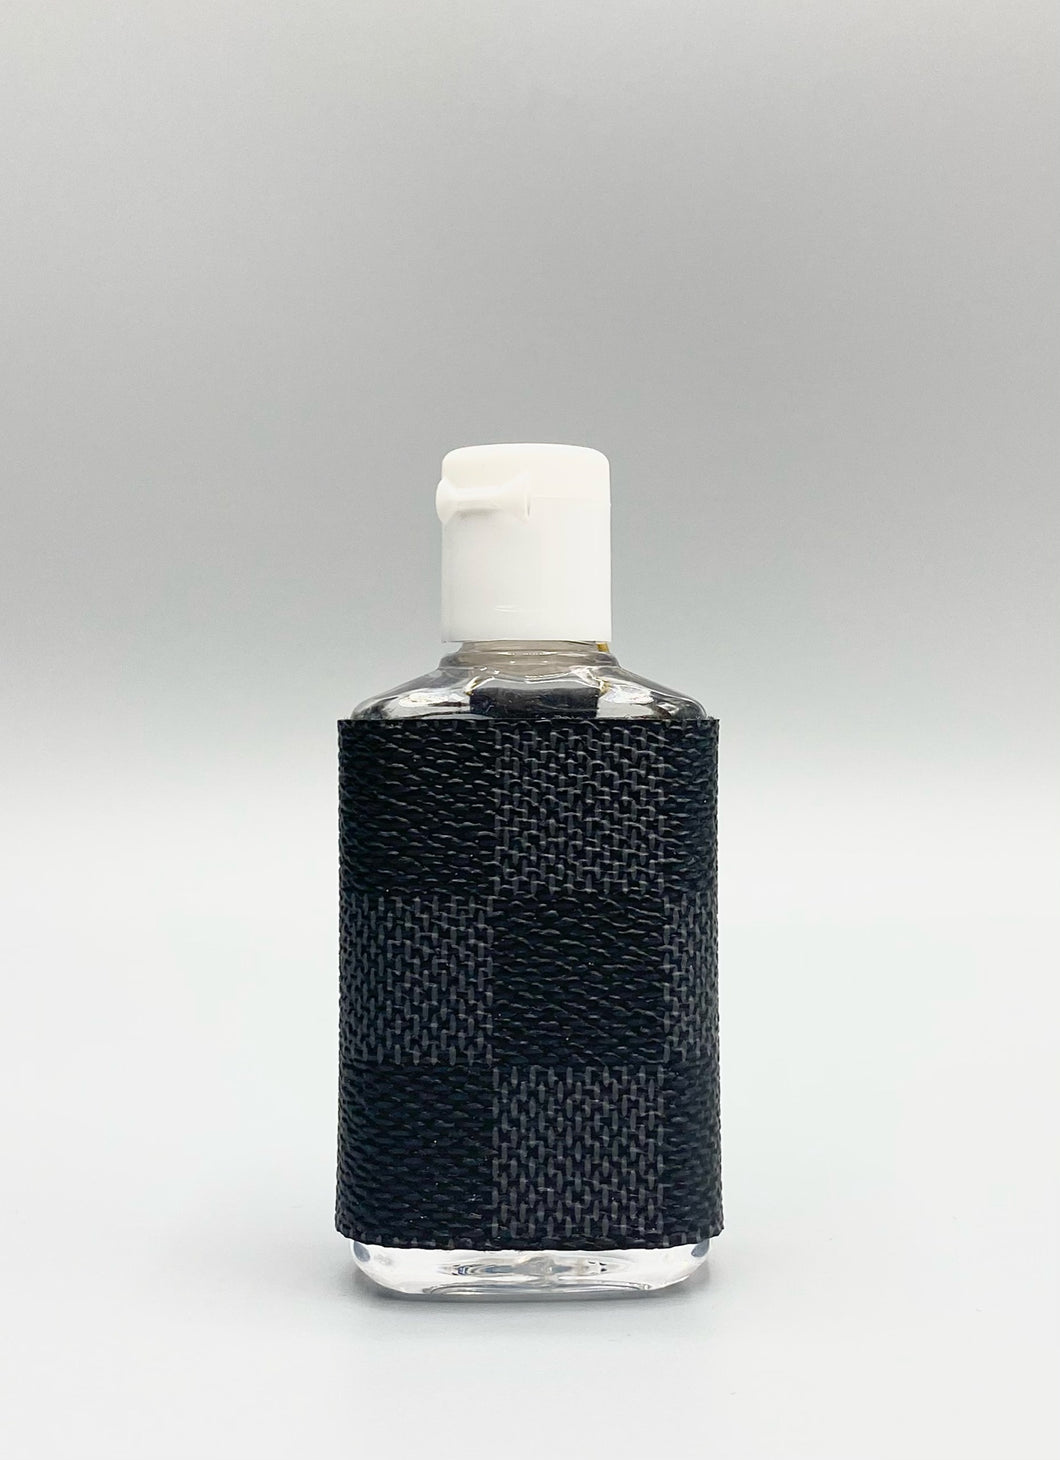 Black Damier Hand Sanitizer